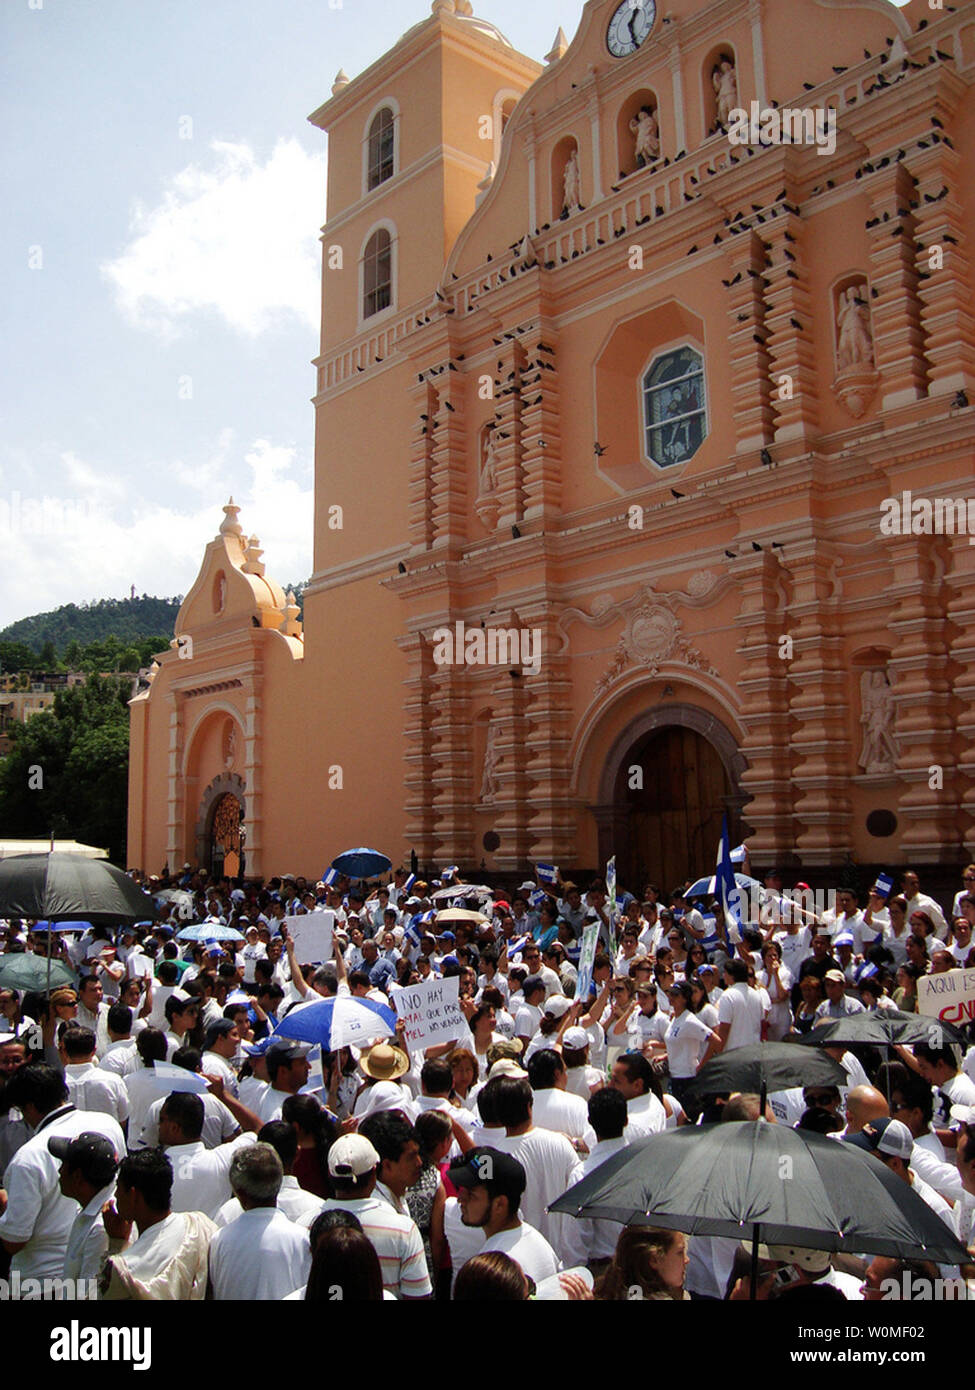 Hondurans participate in a rally against the return of ousted Honduran President Manuel Zelaya during a rally at the central park in Tegucigalpa, Tuesday June 30, 2009. (UPI Photo/Ek Balam) Stock Photo